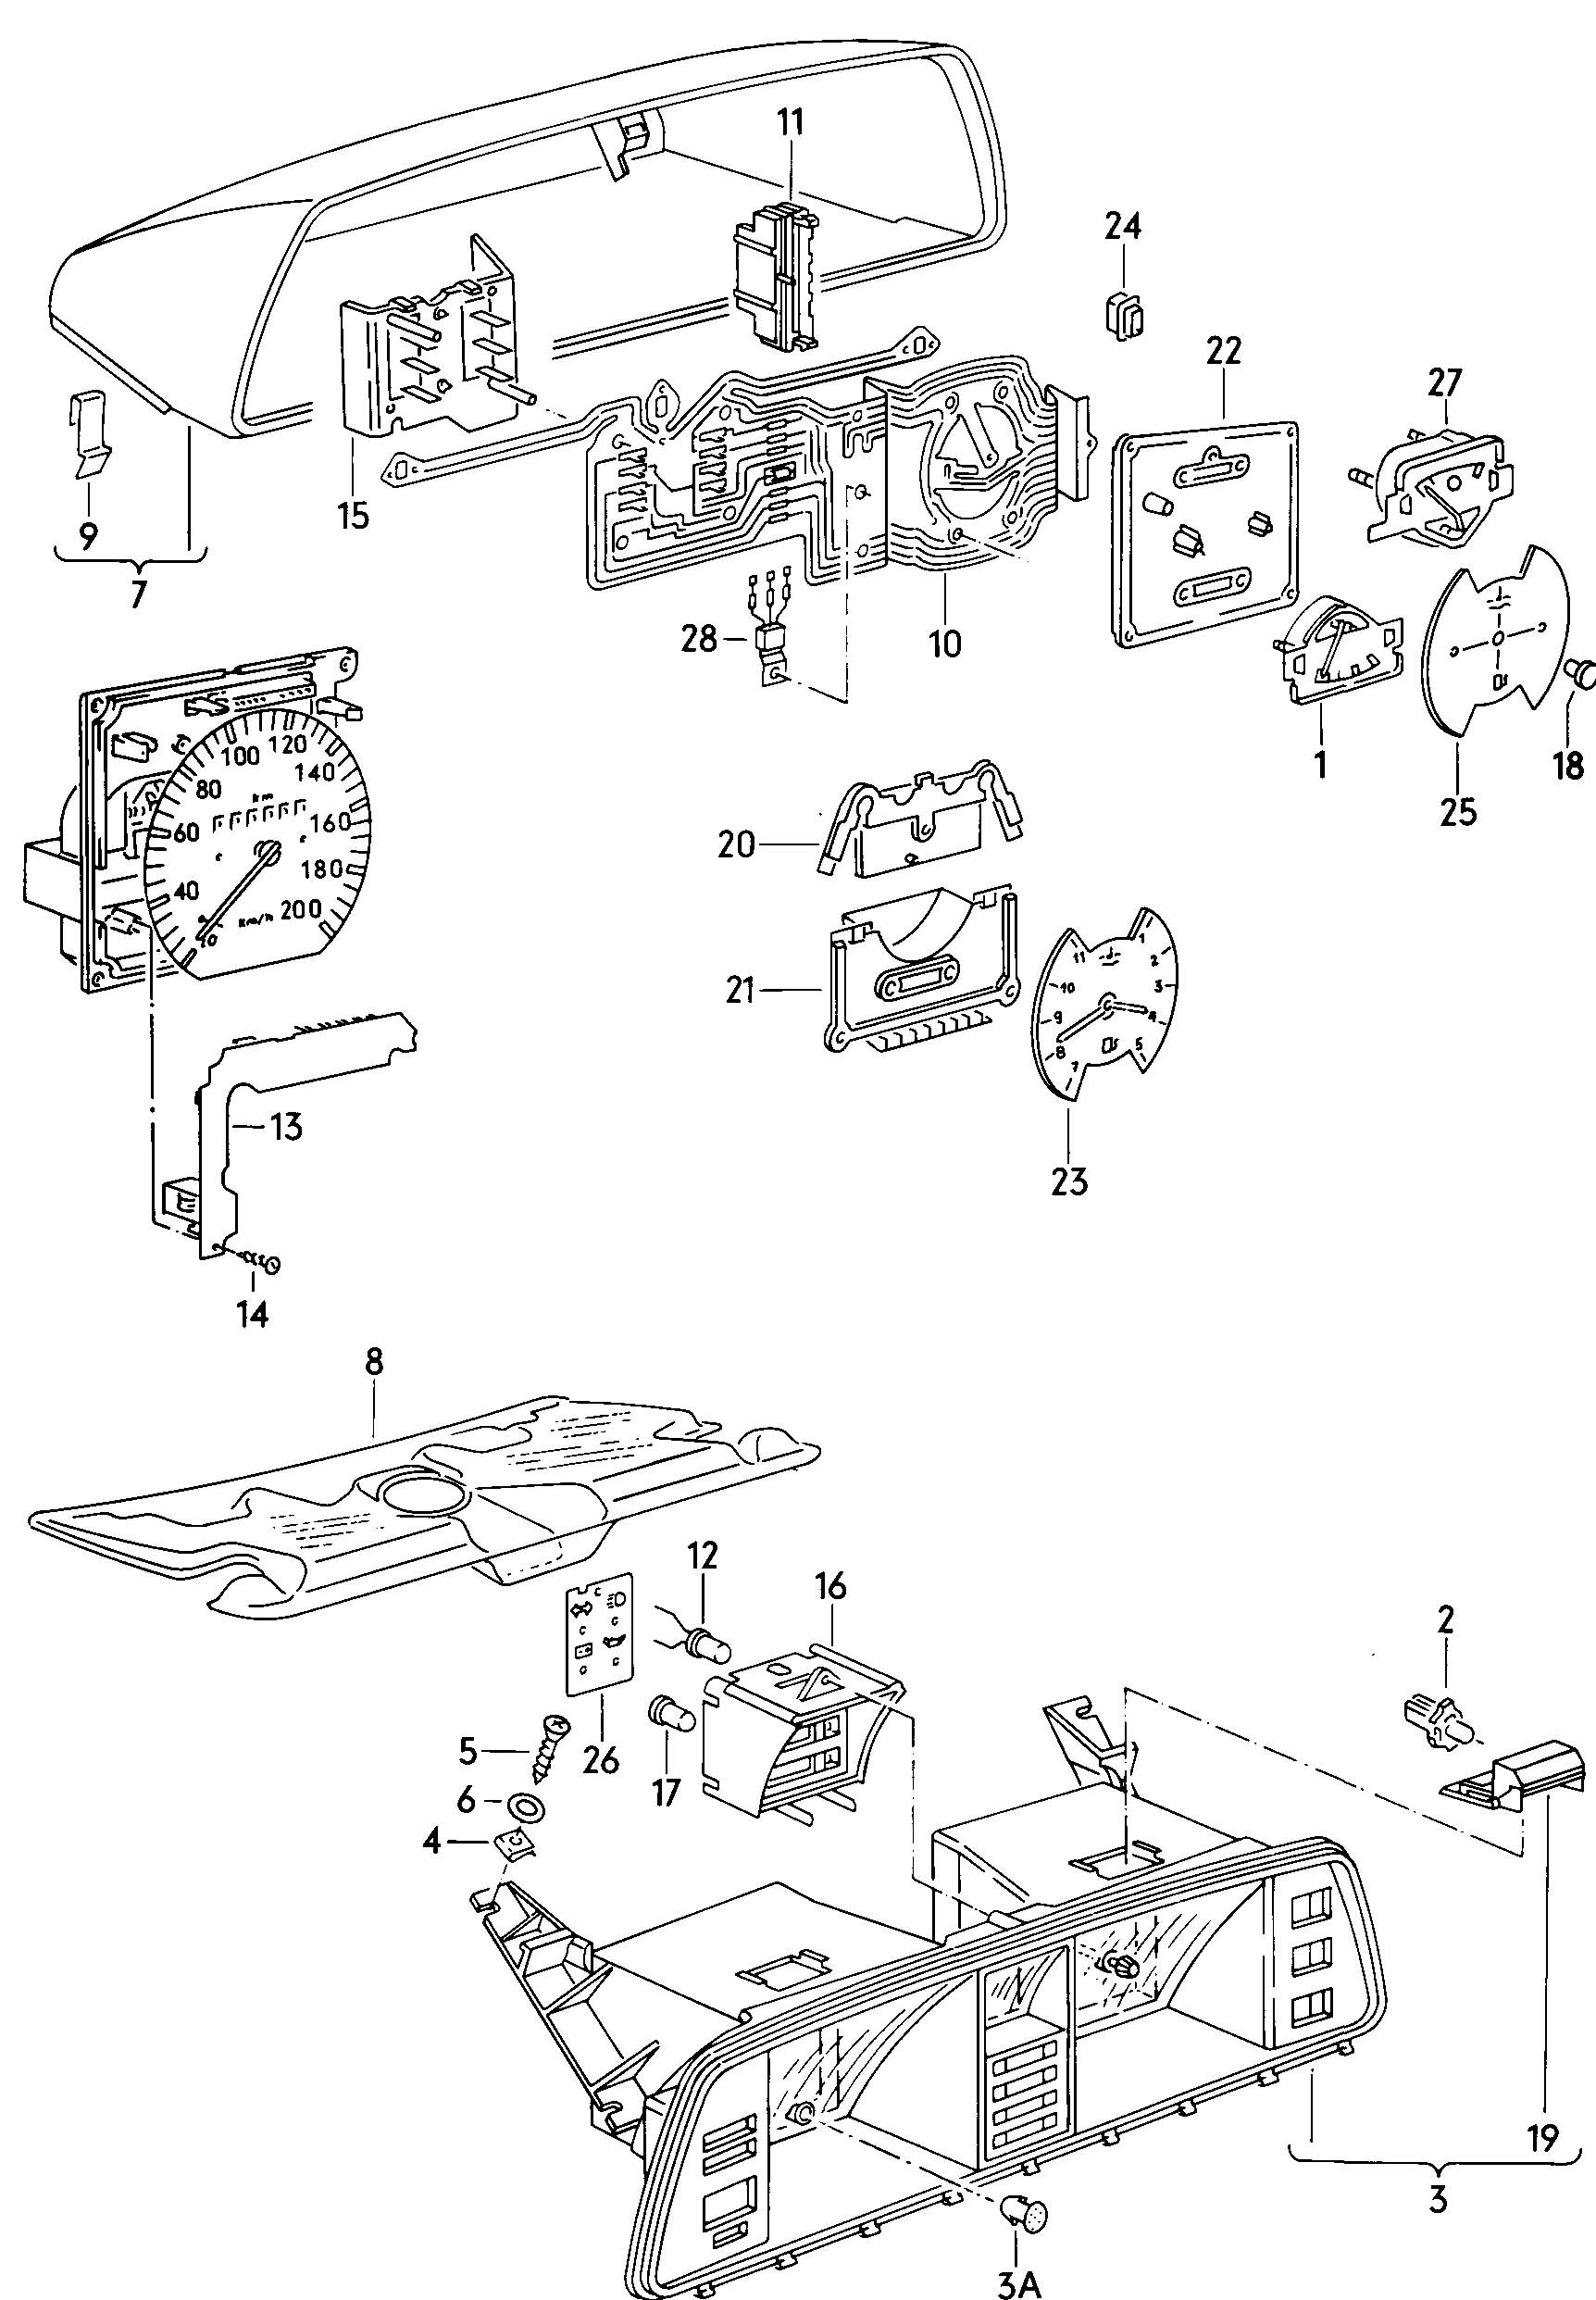 Volkswagen Rabbit Engine Diagram Wiring Diagrams 2007 Vw For 1980 Auto 2008